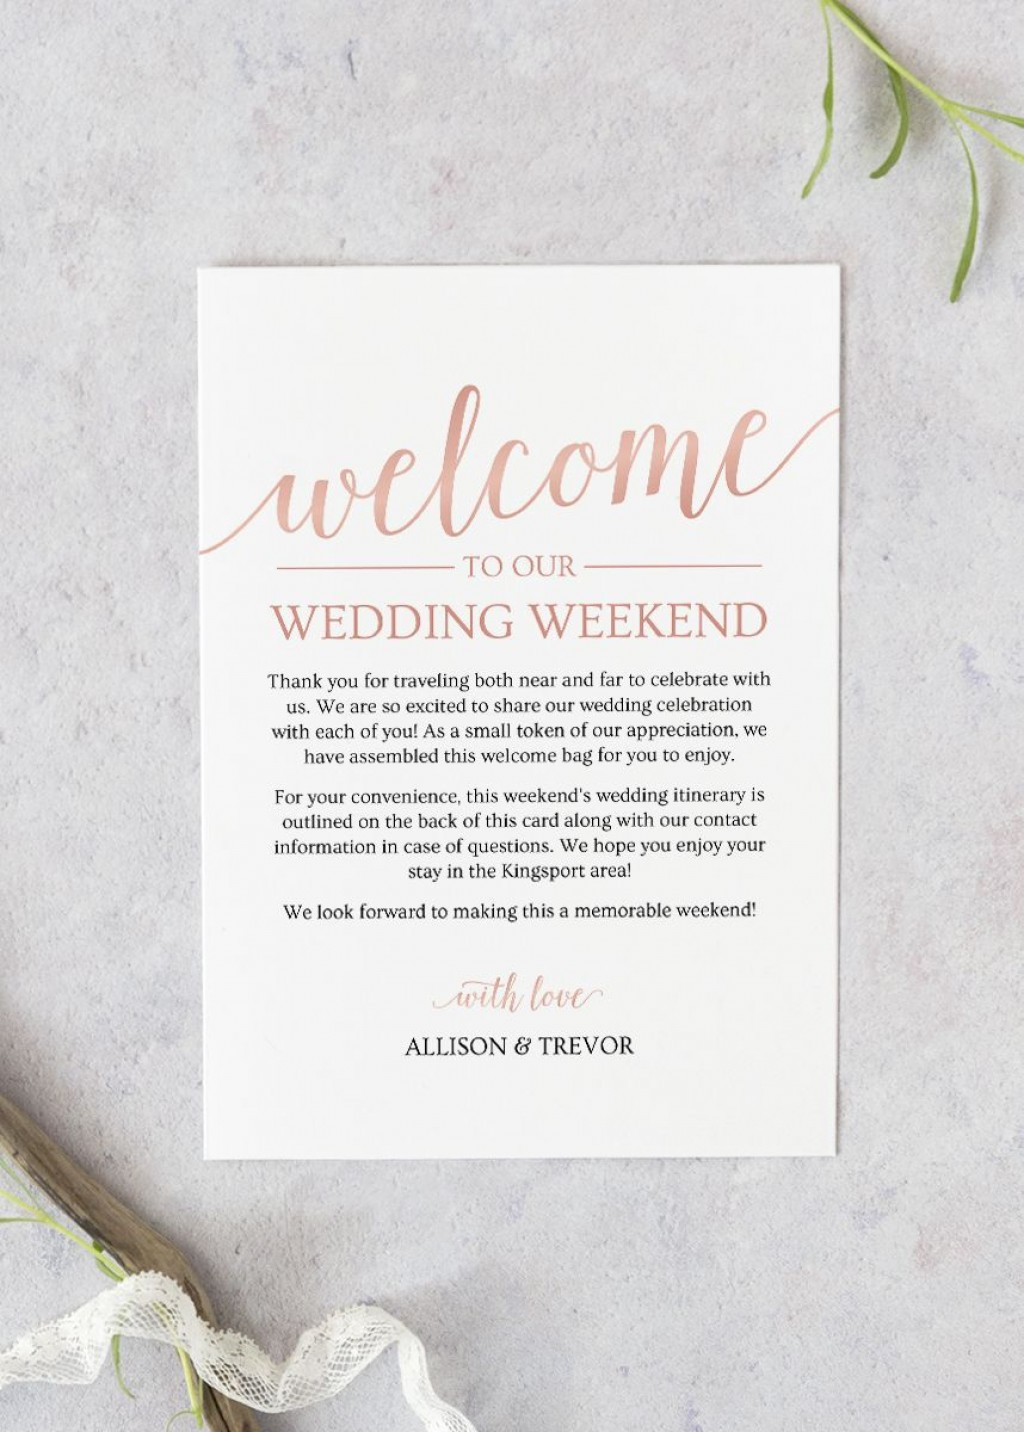 005 Top Wedding Welcome Bag Letter Template Free High Def Large